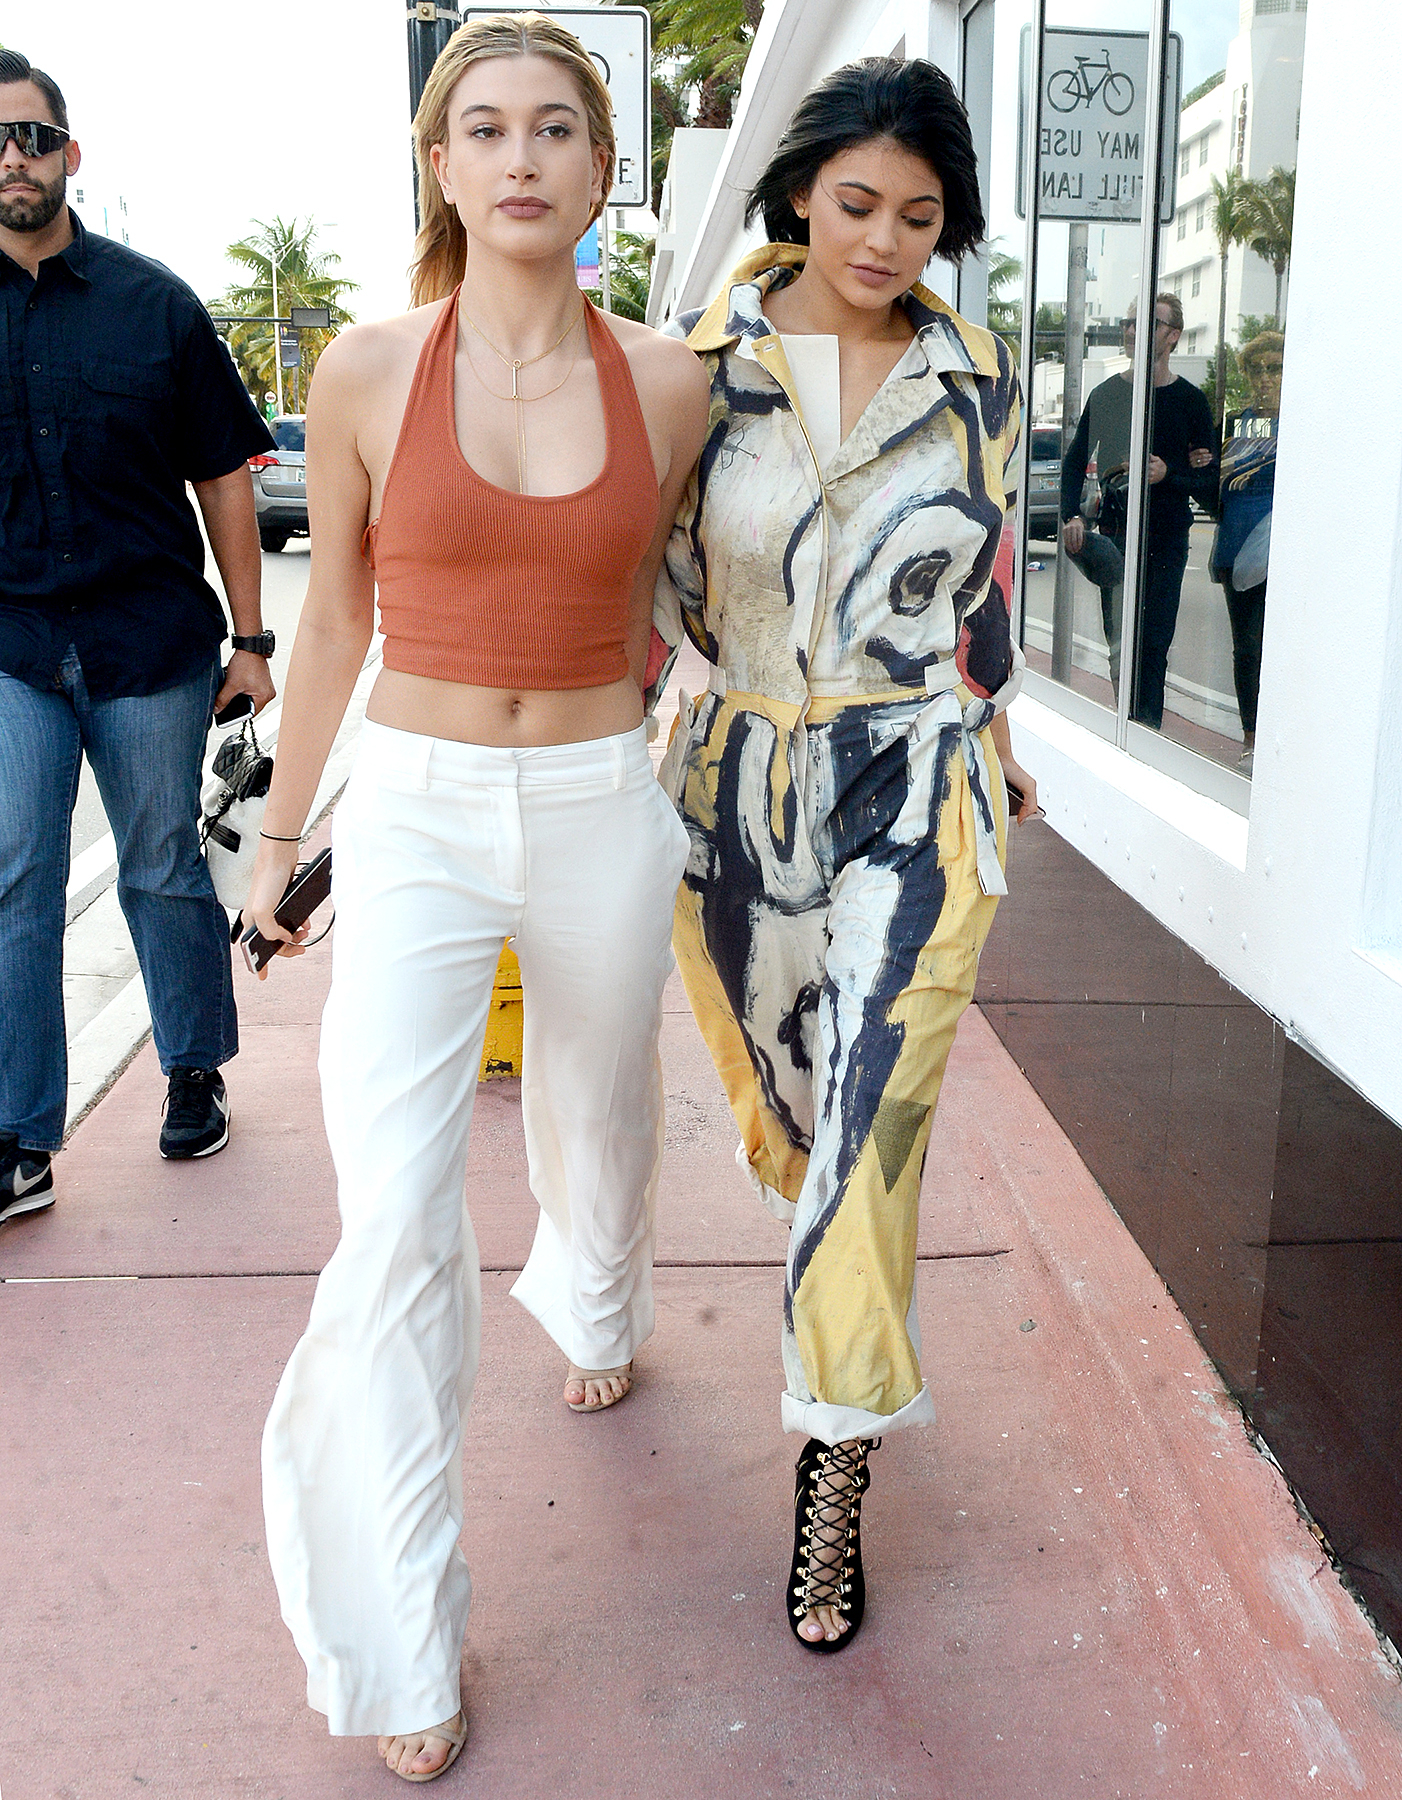 Models Kylie Jenner and Hailey Baldwin are seen shopping on a blustery day in Miami Beach on December 6.